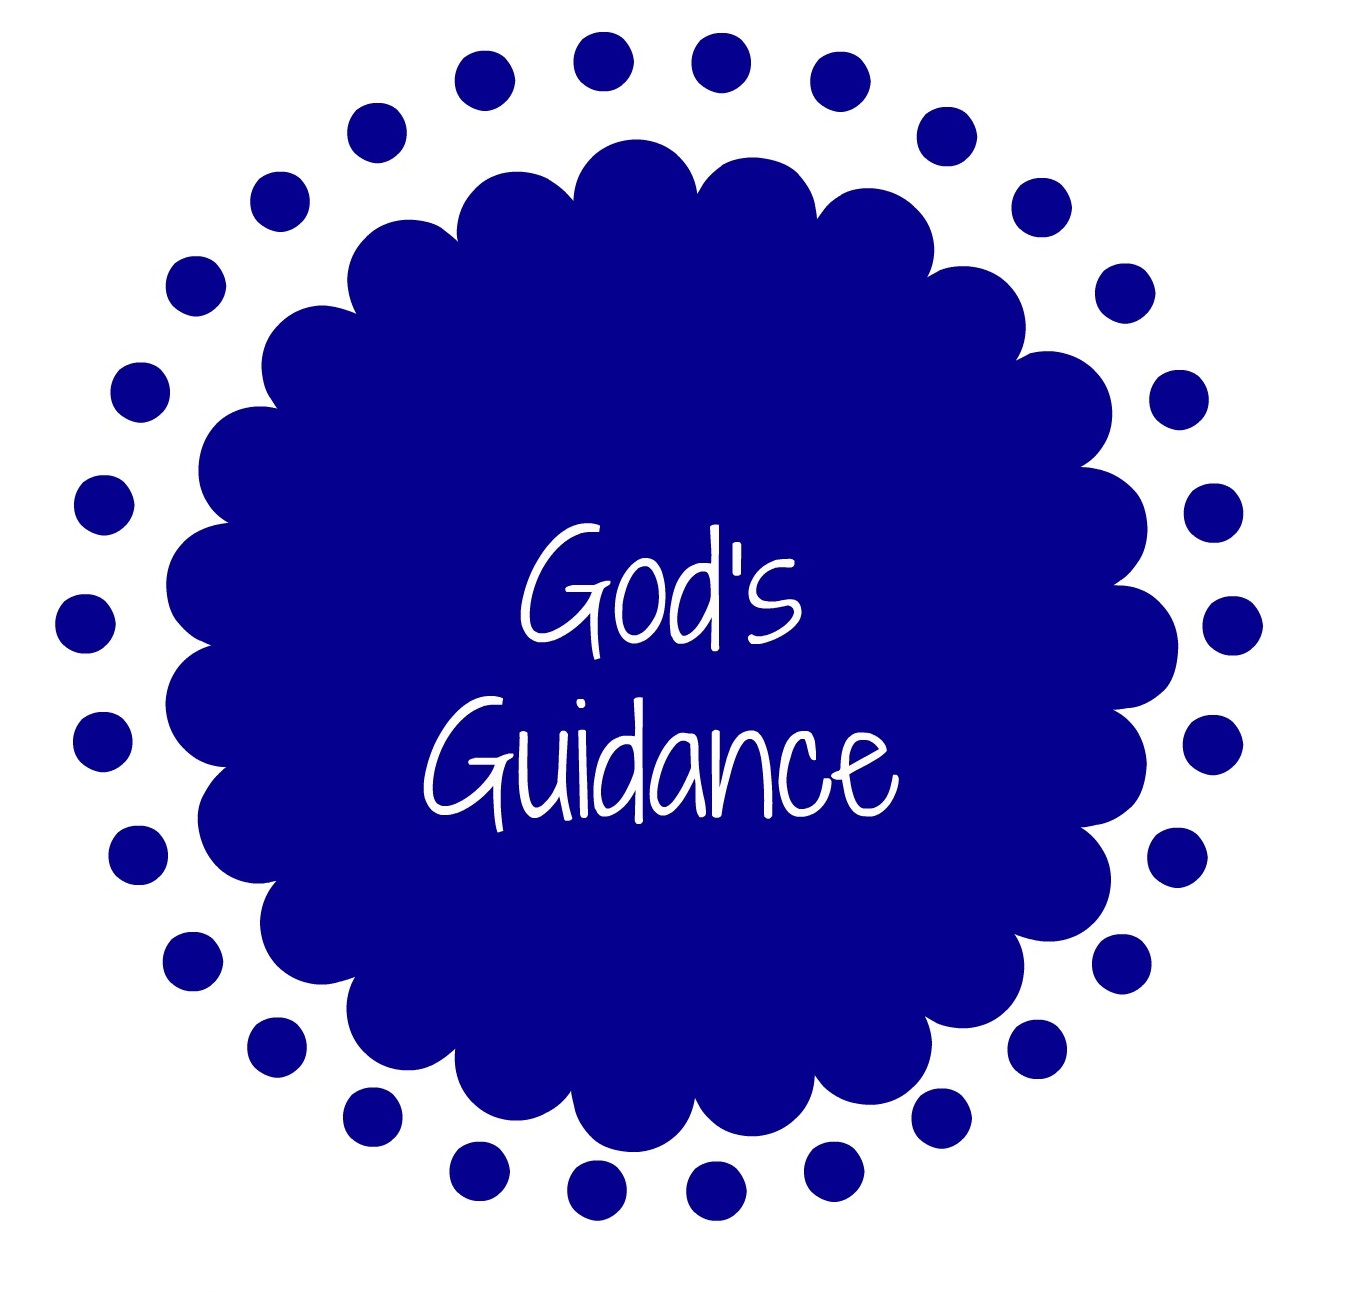 Gods-guidance